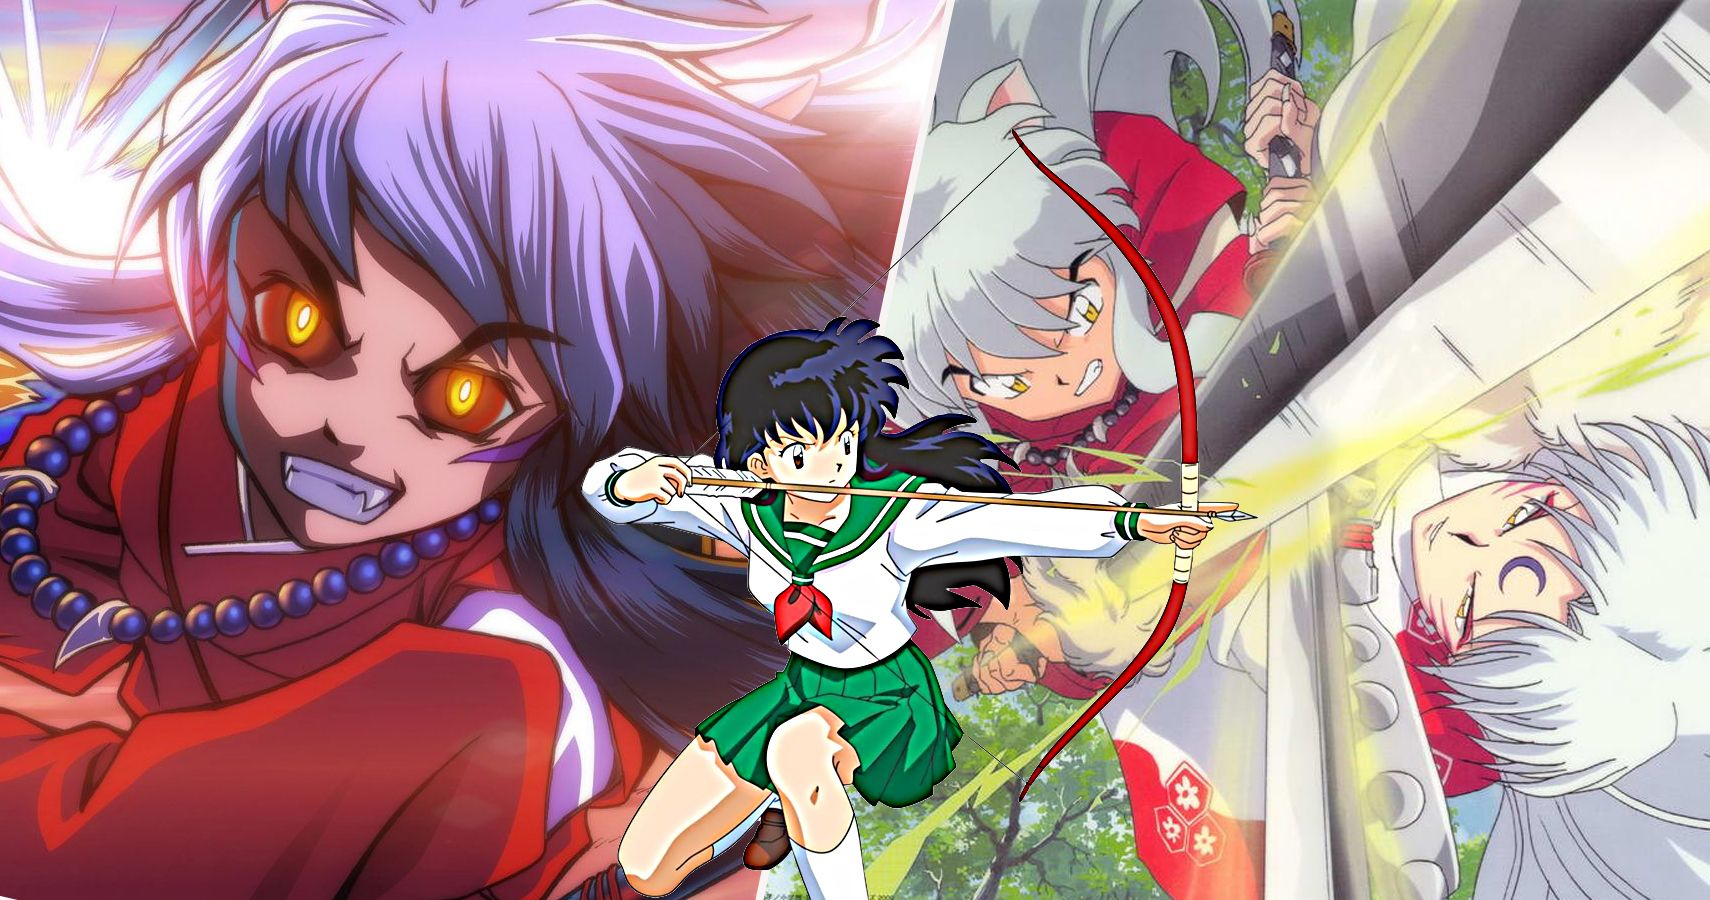 20 Things About Inuyasha That Make No Sense Screenrant